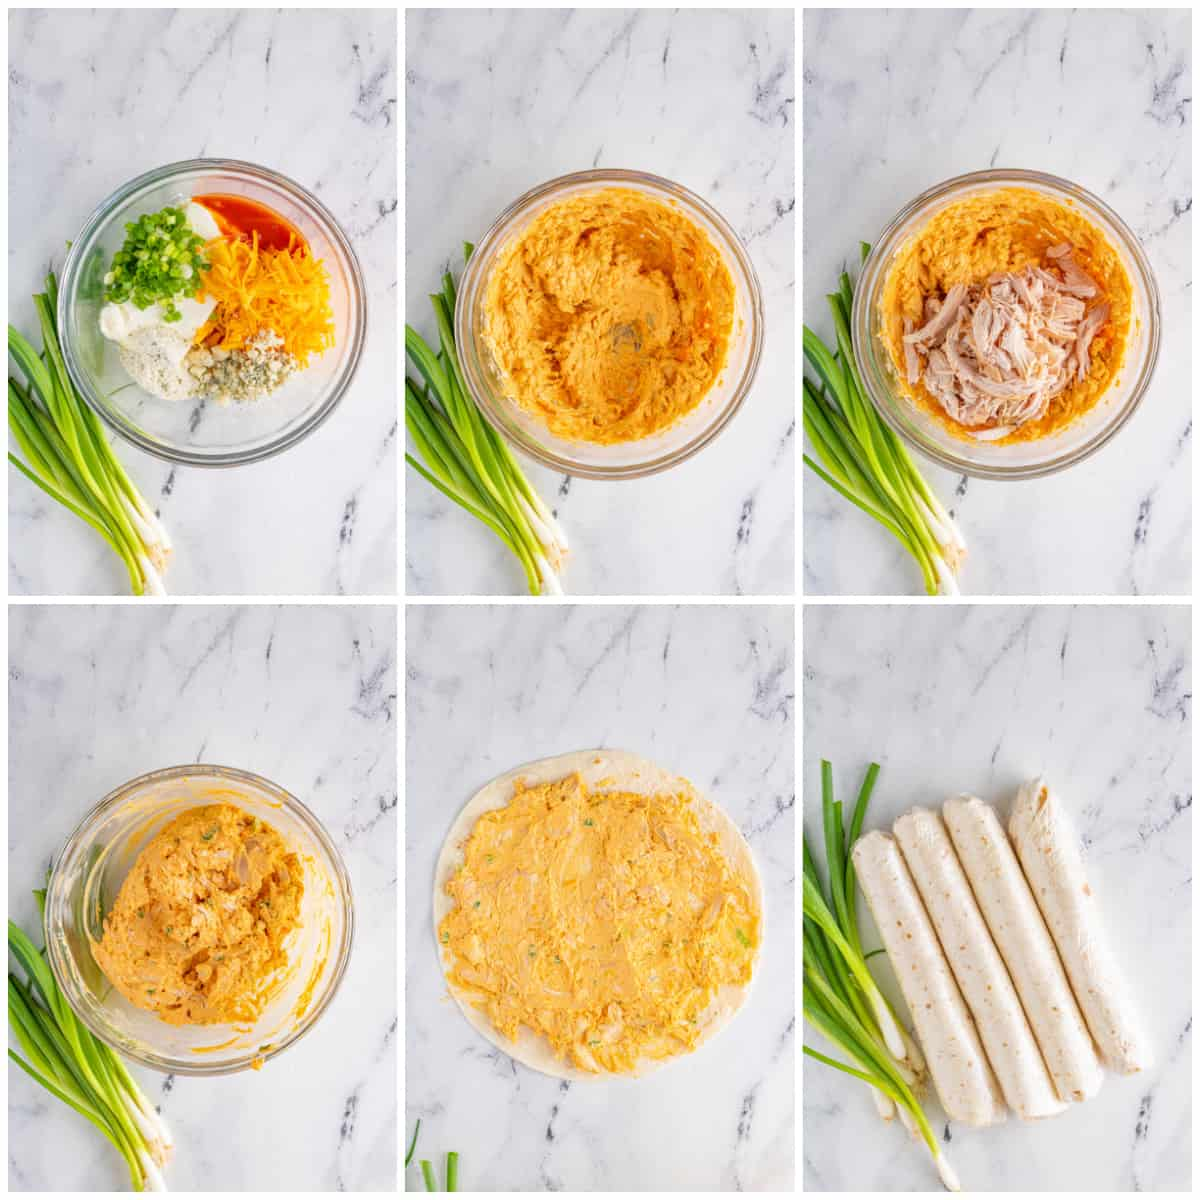 Step by step photos on how to make Buffalo Chicken Pinwhels